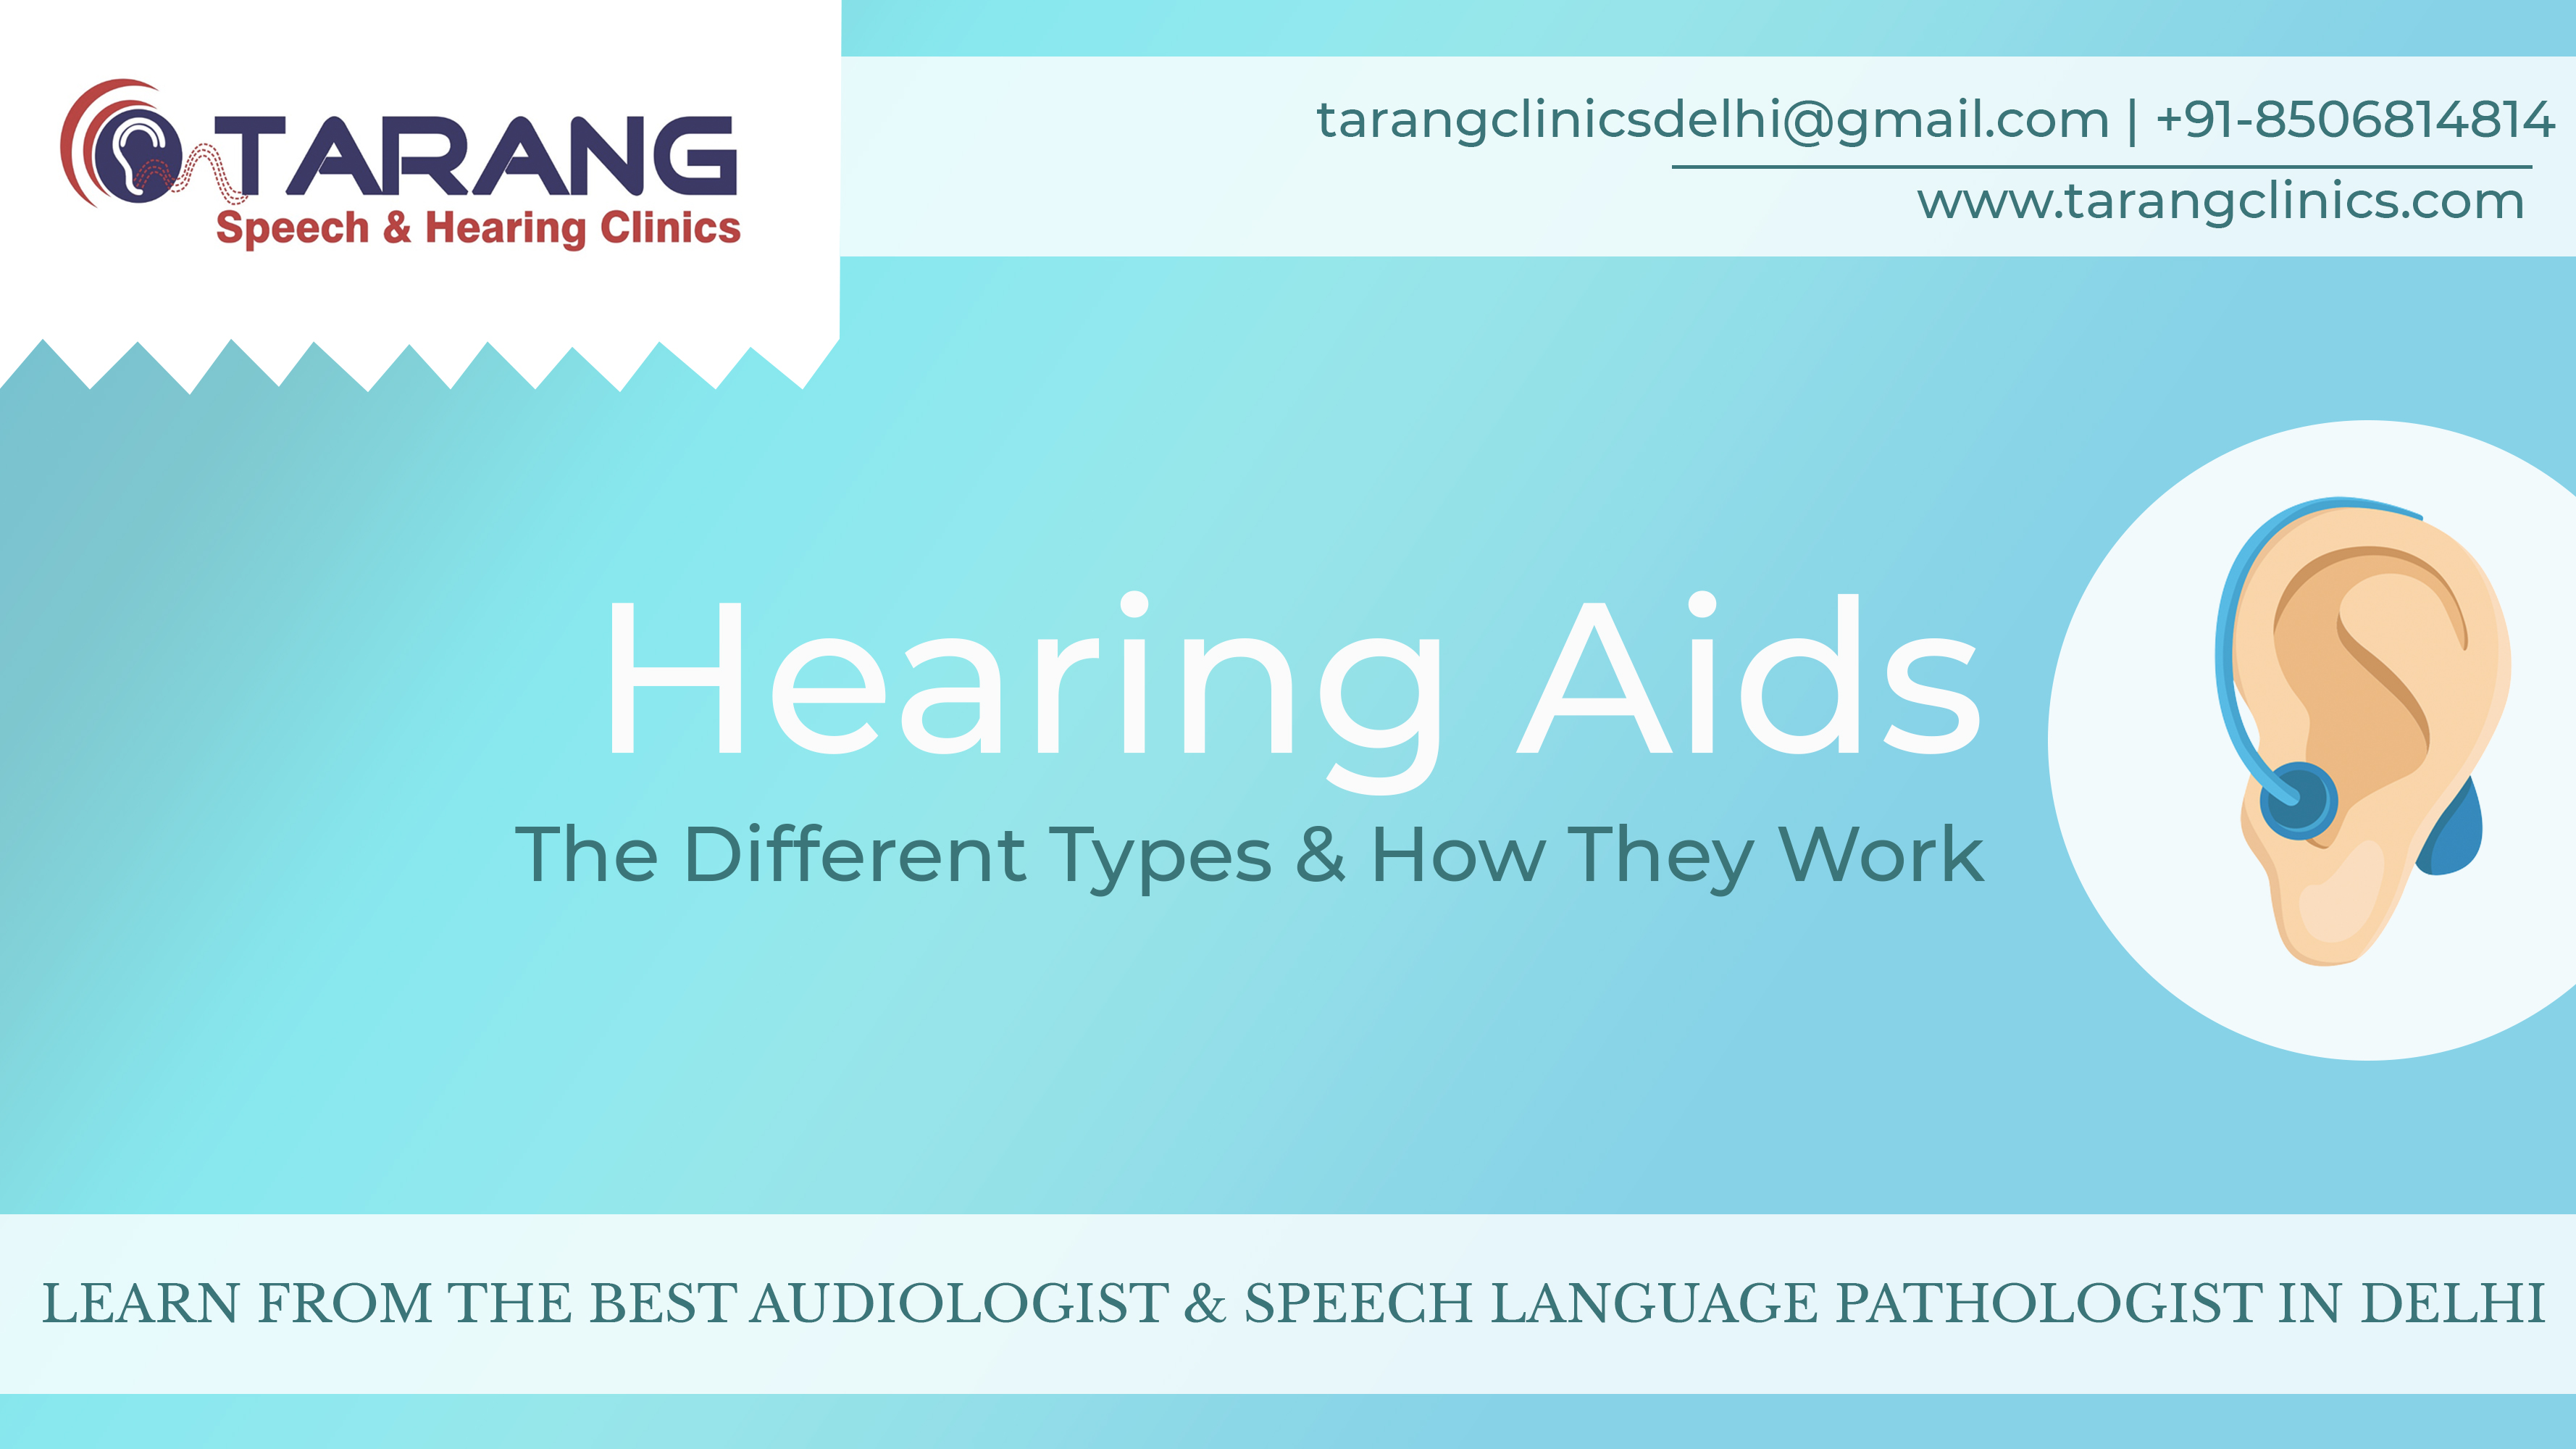 Banner- Hearing Aids: The Different Types & How They Work